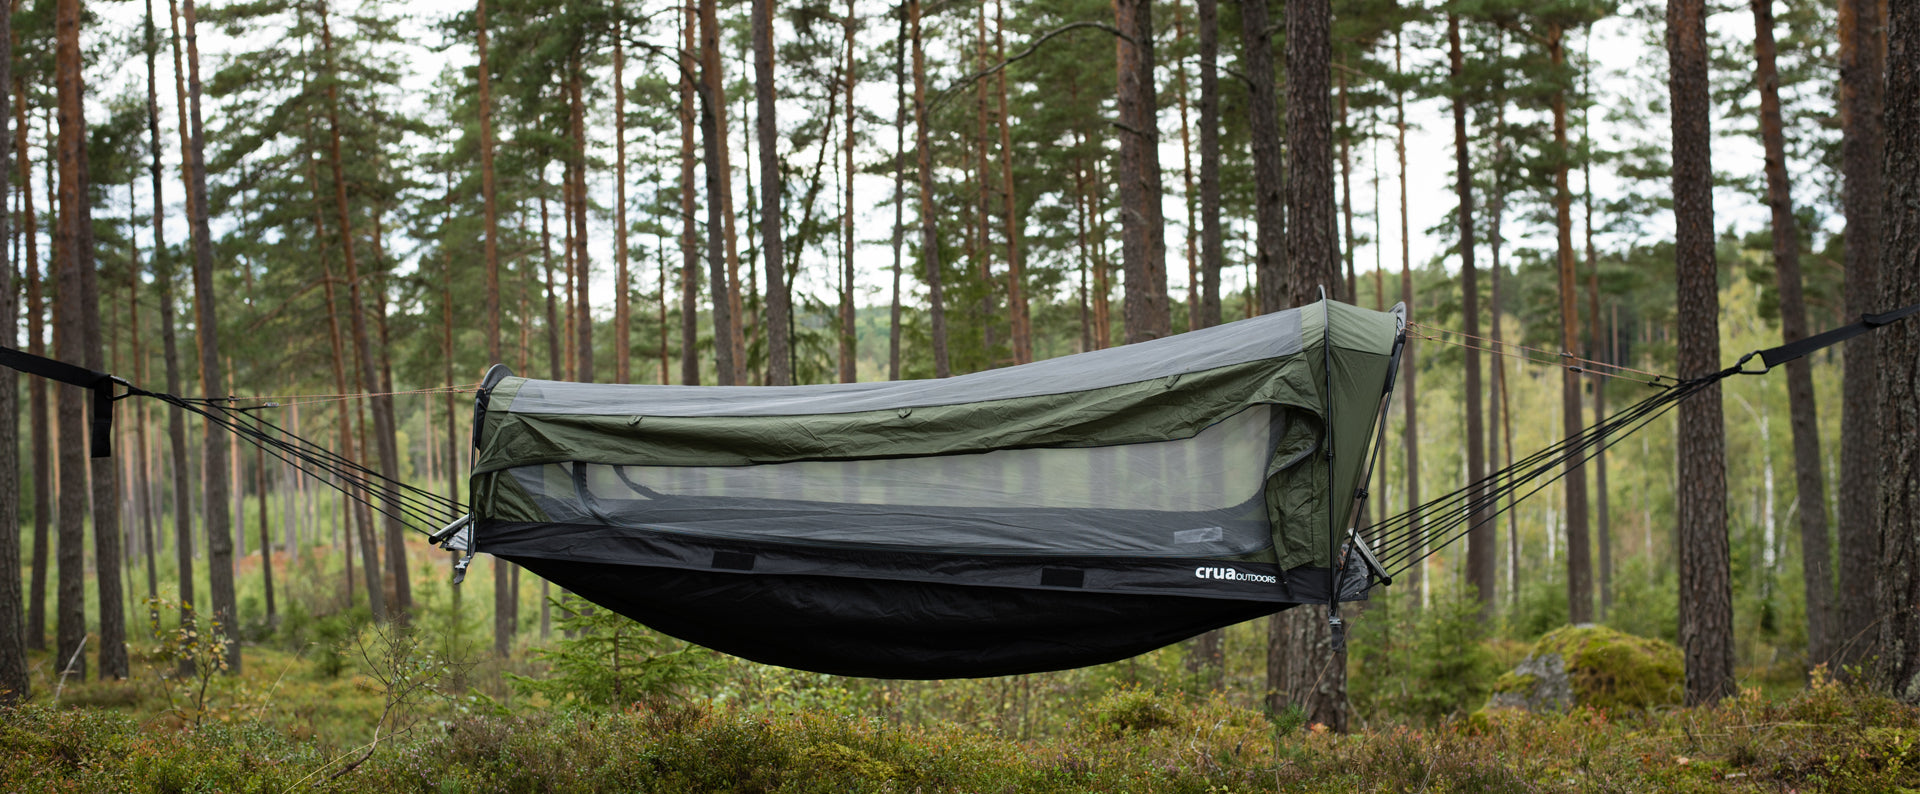 bivy id hammock ground cloth combo and tarp tent tyvek